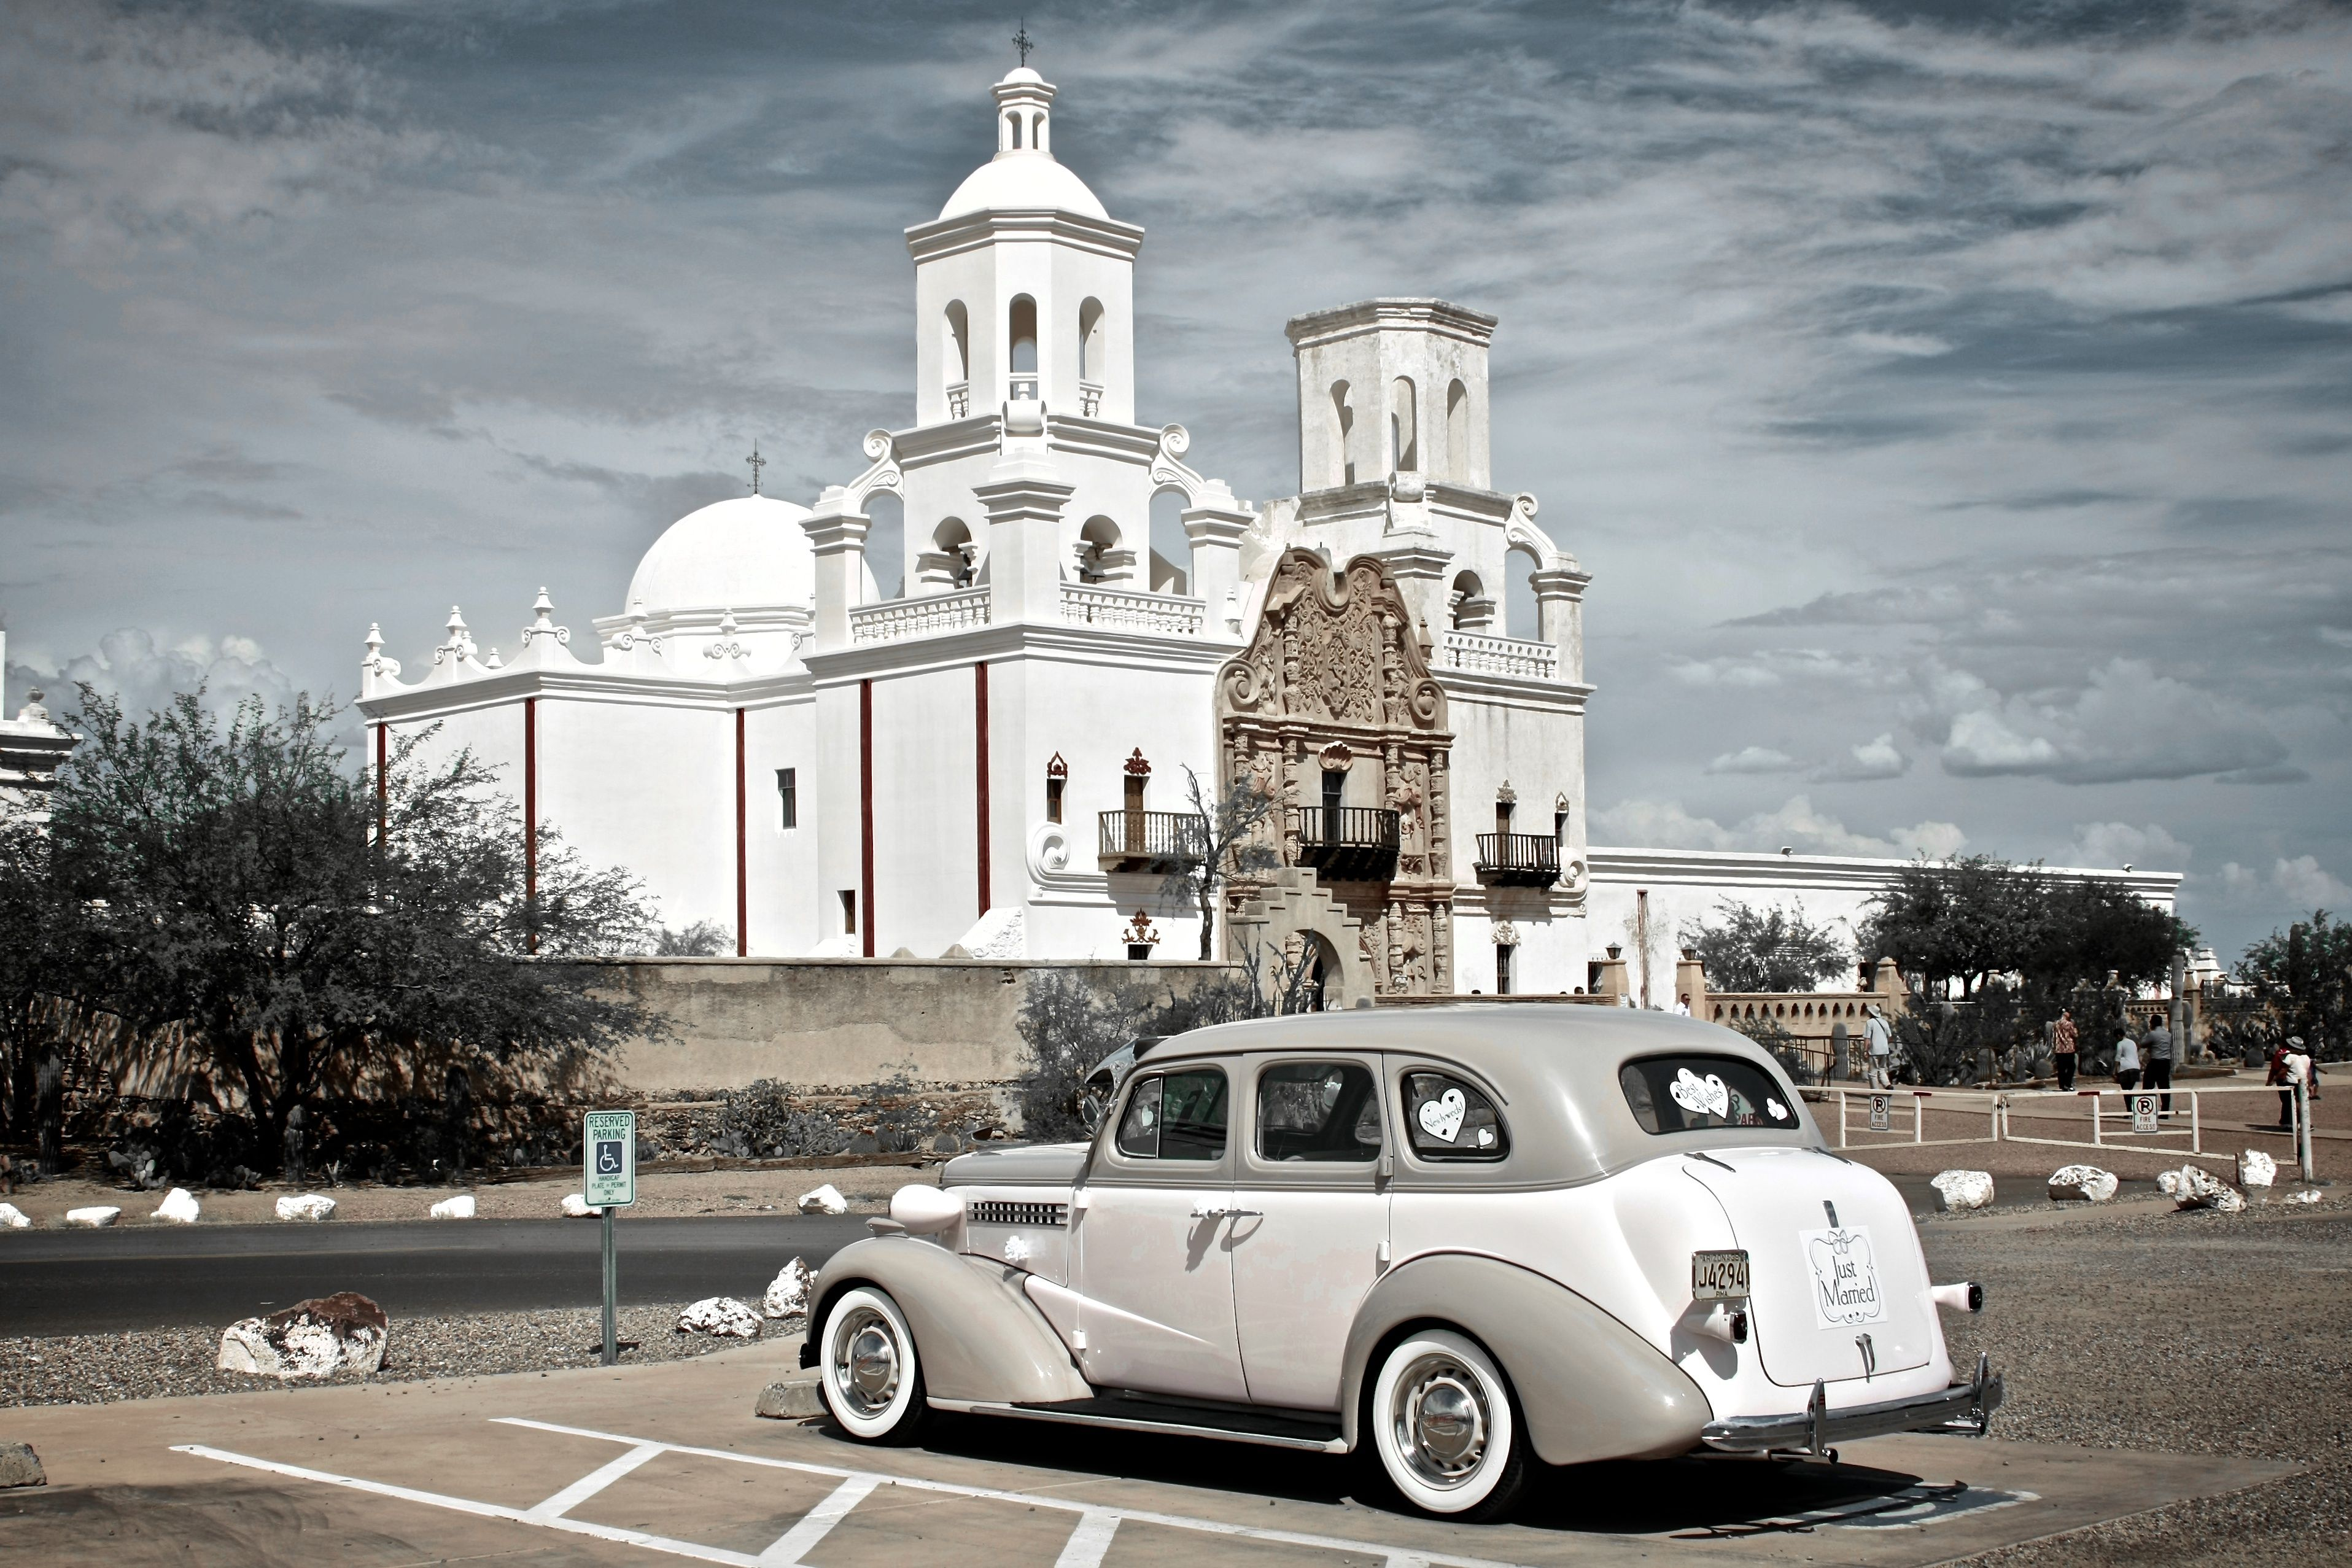 San Xavier Mission in Tucson, AZ. Taken by SuperGold Productions.